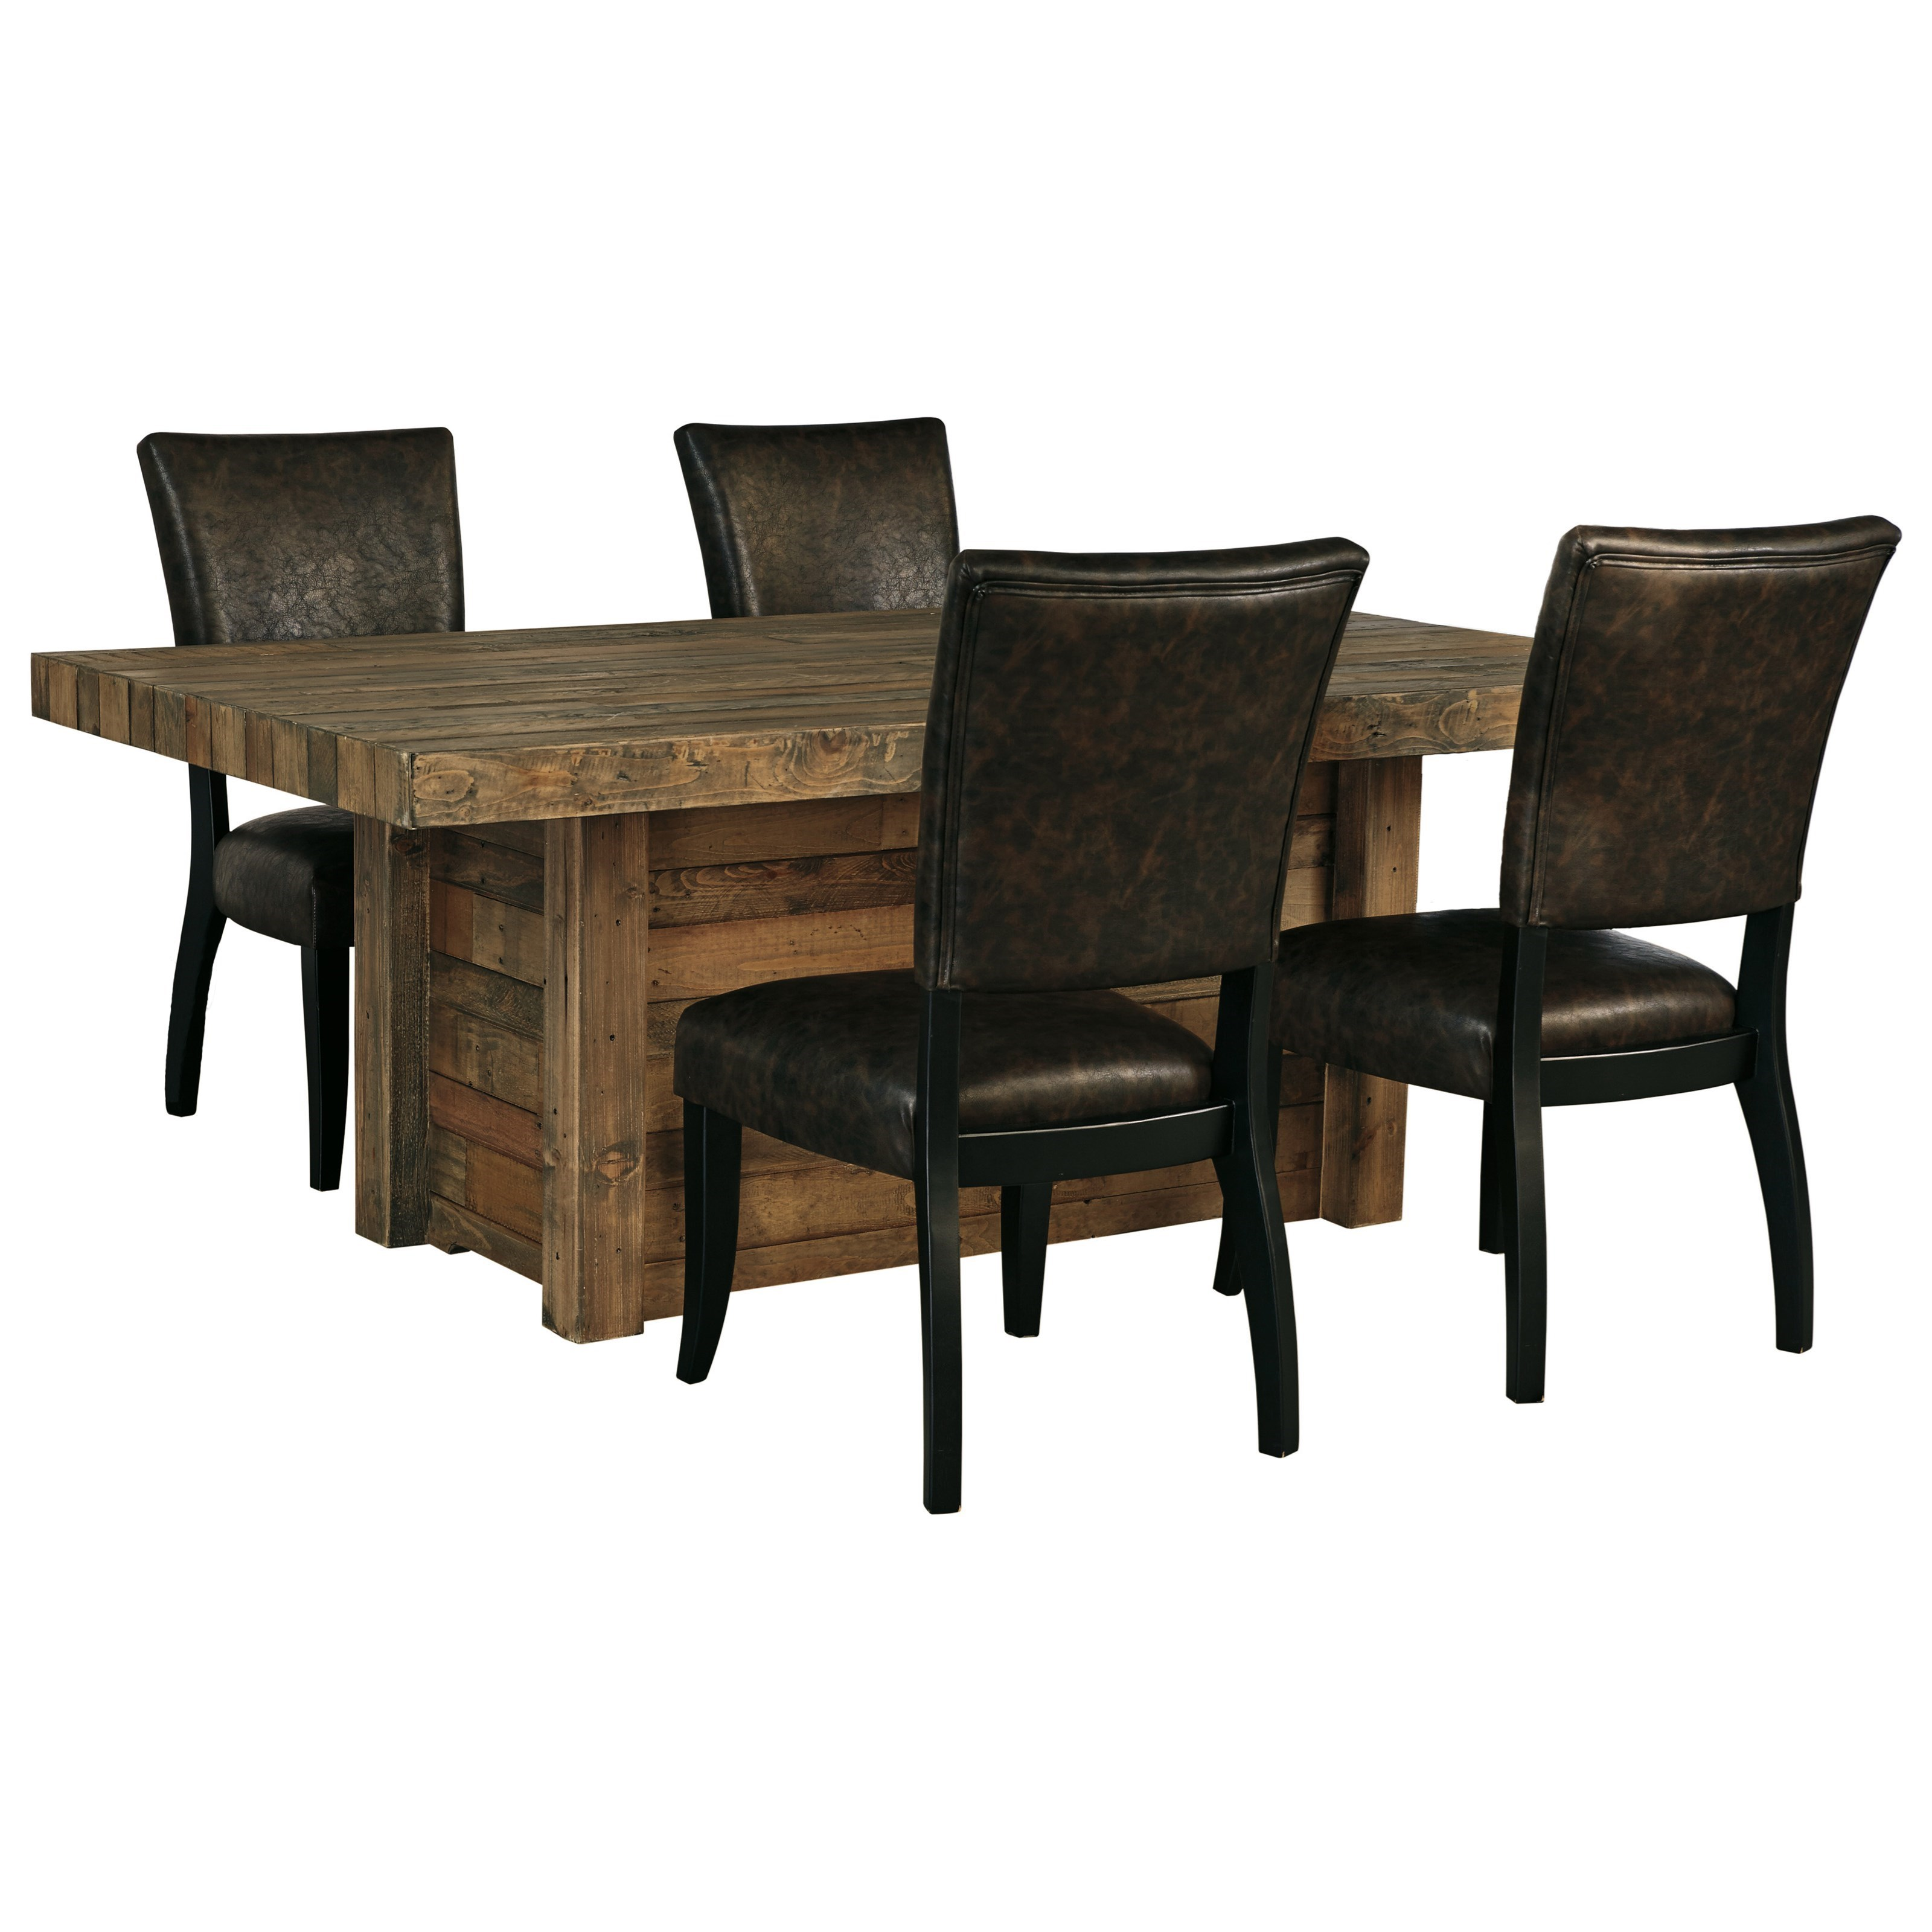 Sommerford 5-Piece Rectangular Dining Room Table Set by Signature Design by Ashley at Northeast Factory Direct